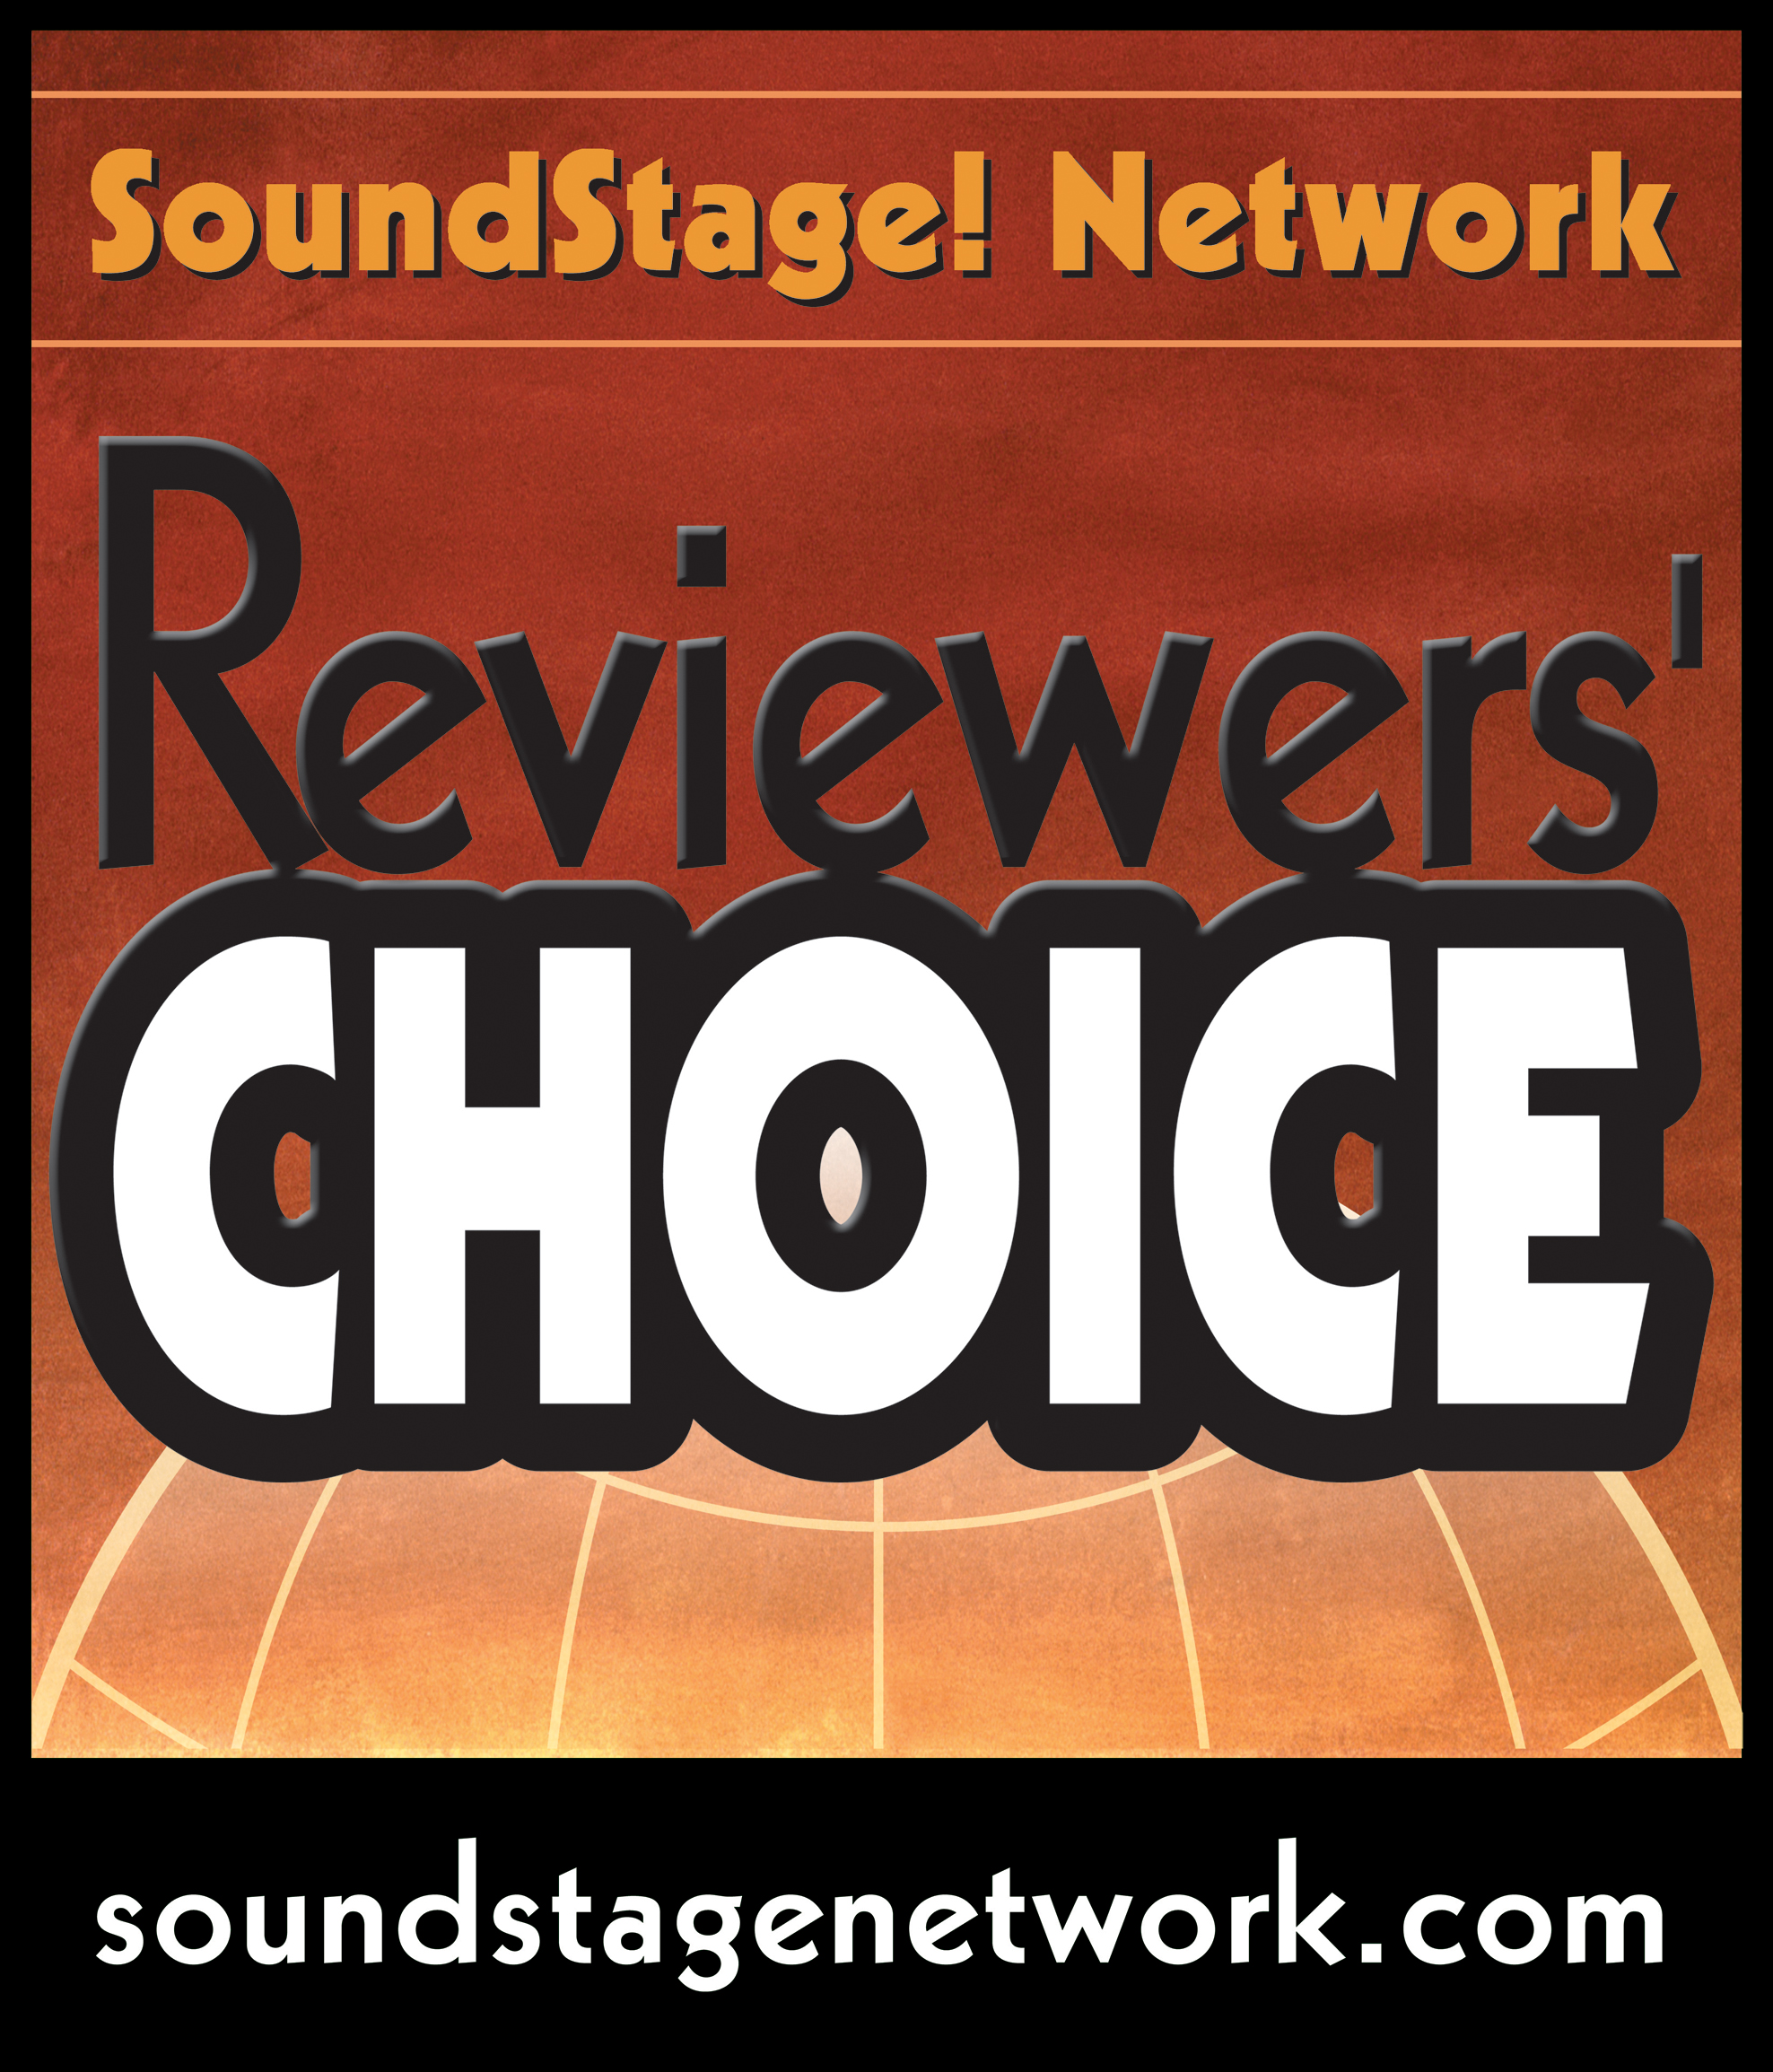 Soundstage! Reviewers Choice Award